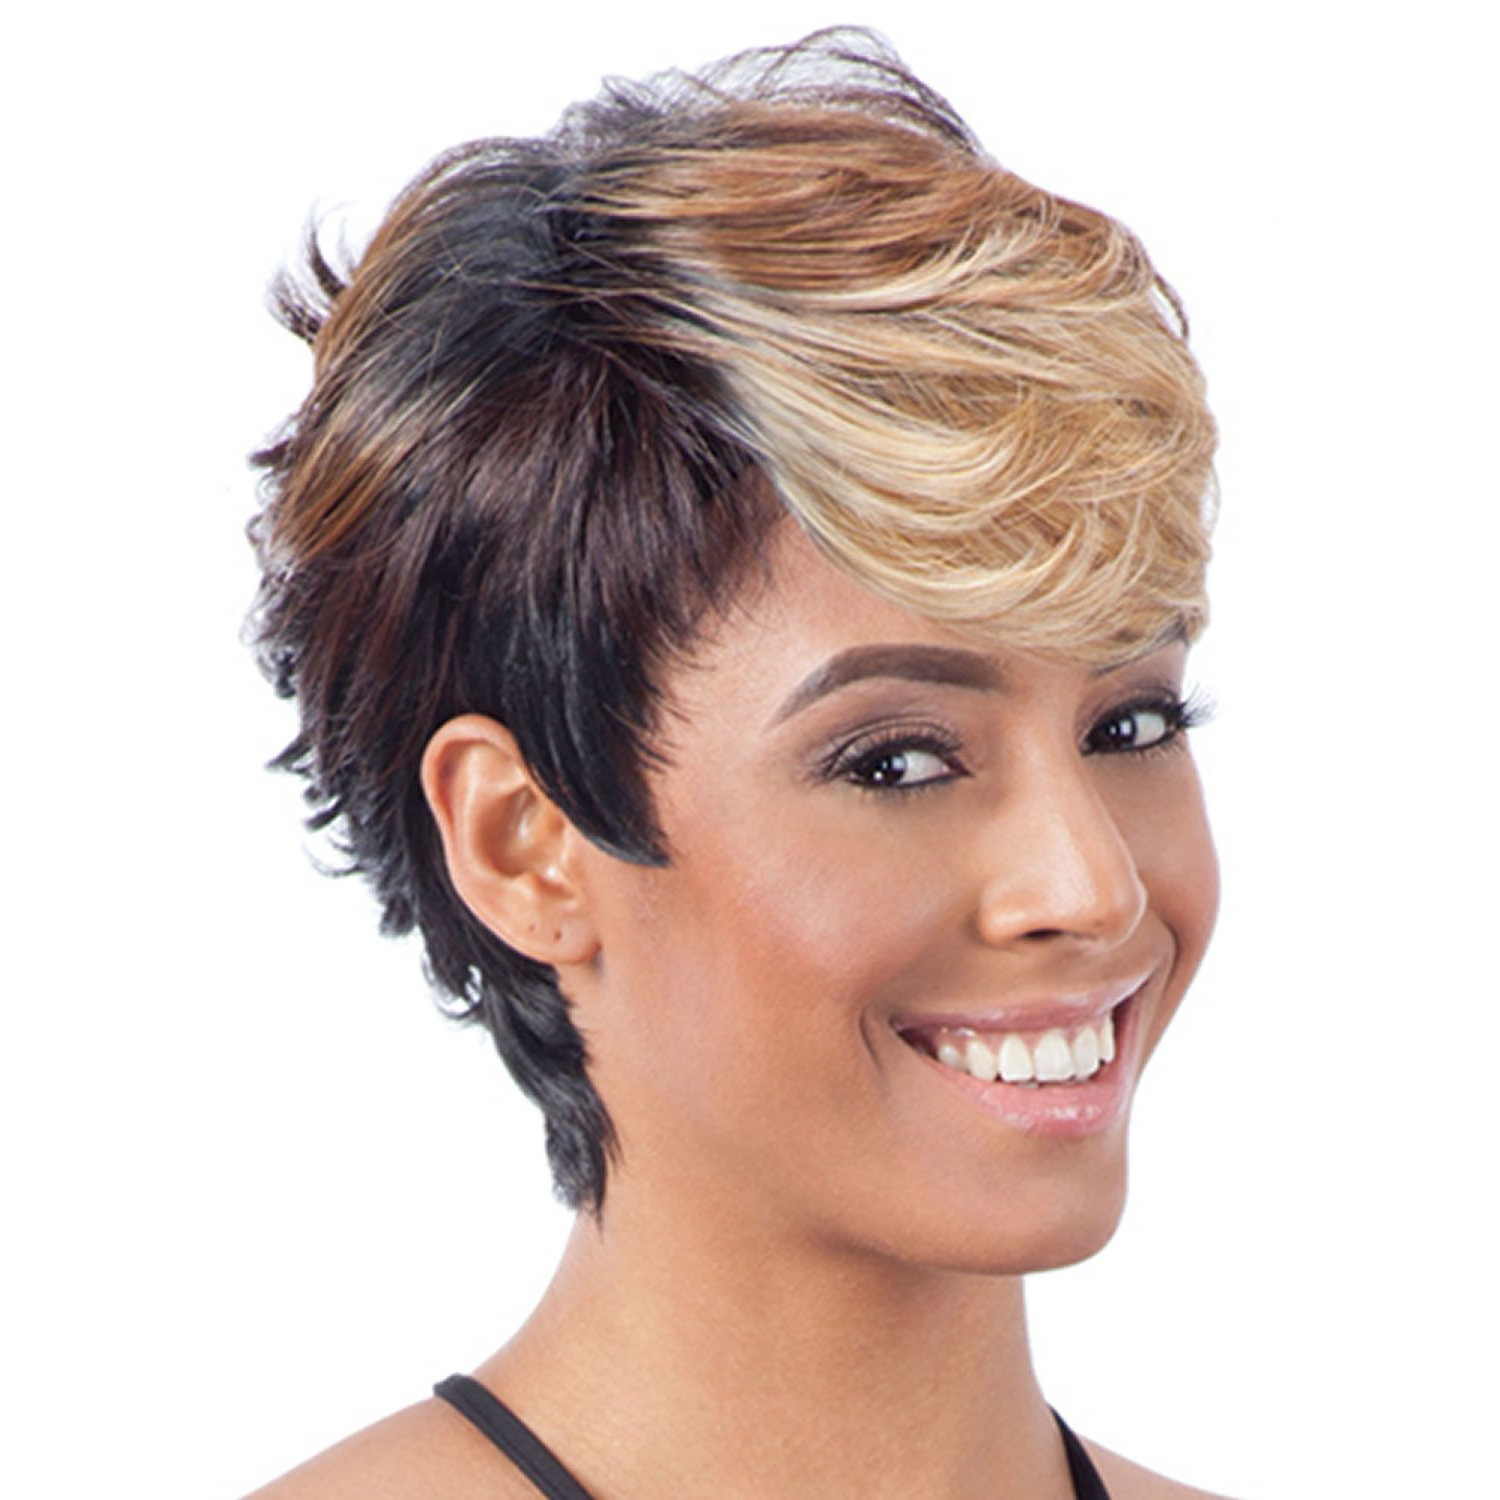 2018 Short Haircuts For Black Women – 57 Pixie Short Black Inside Short Haircuts For Black Women With Fine Hair (View 20 of 25)